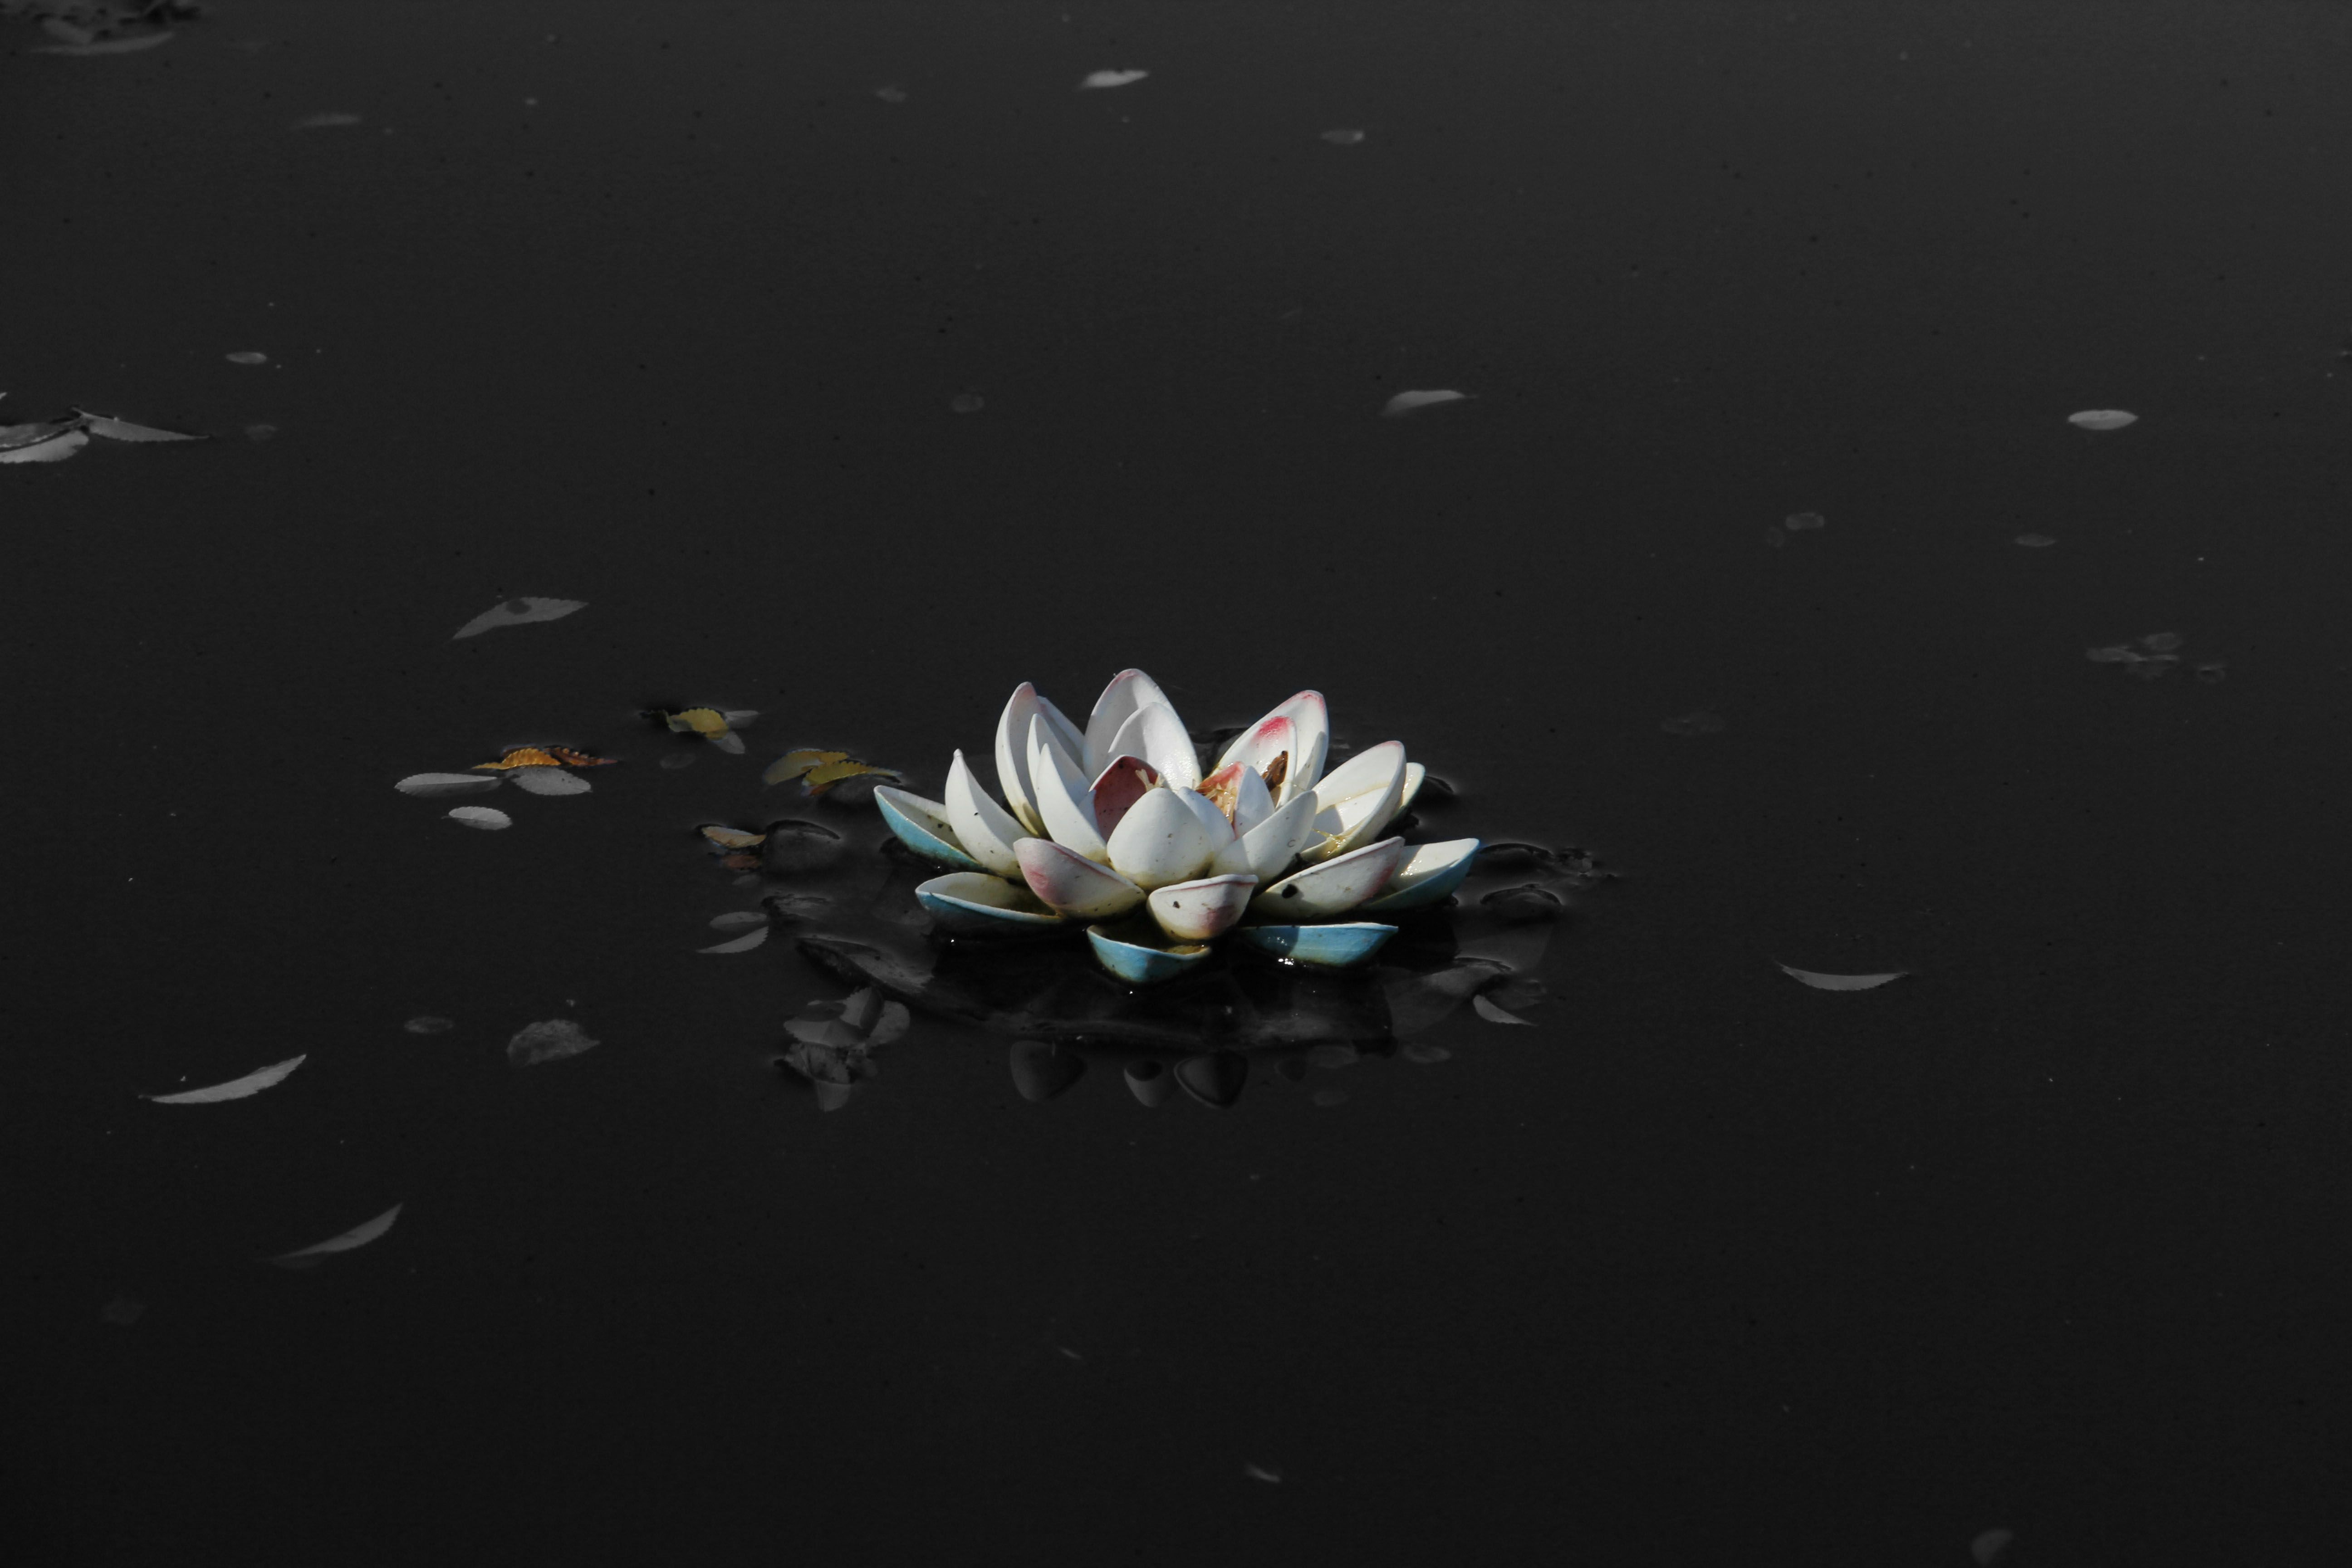 White Lotus Graphic Art Wallpapers Top Free White Lotus Graphic